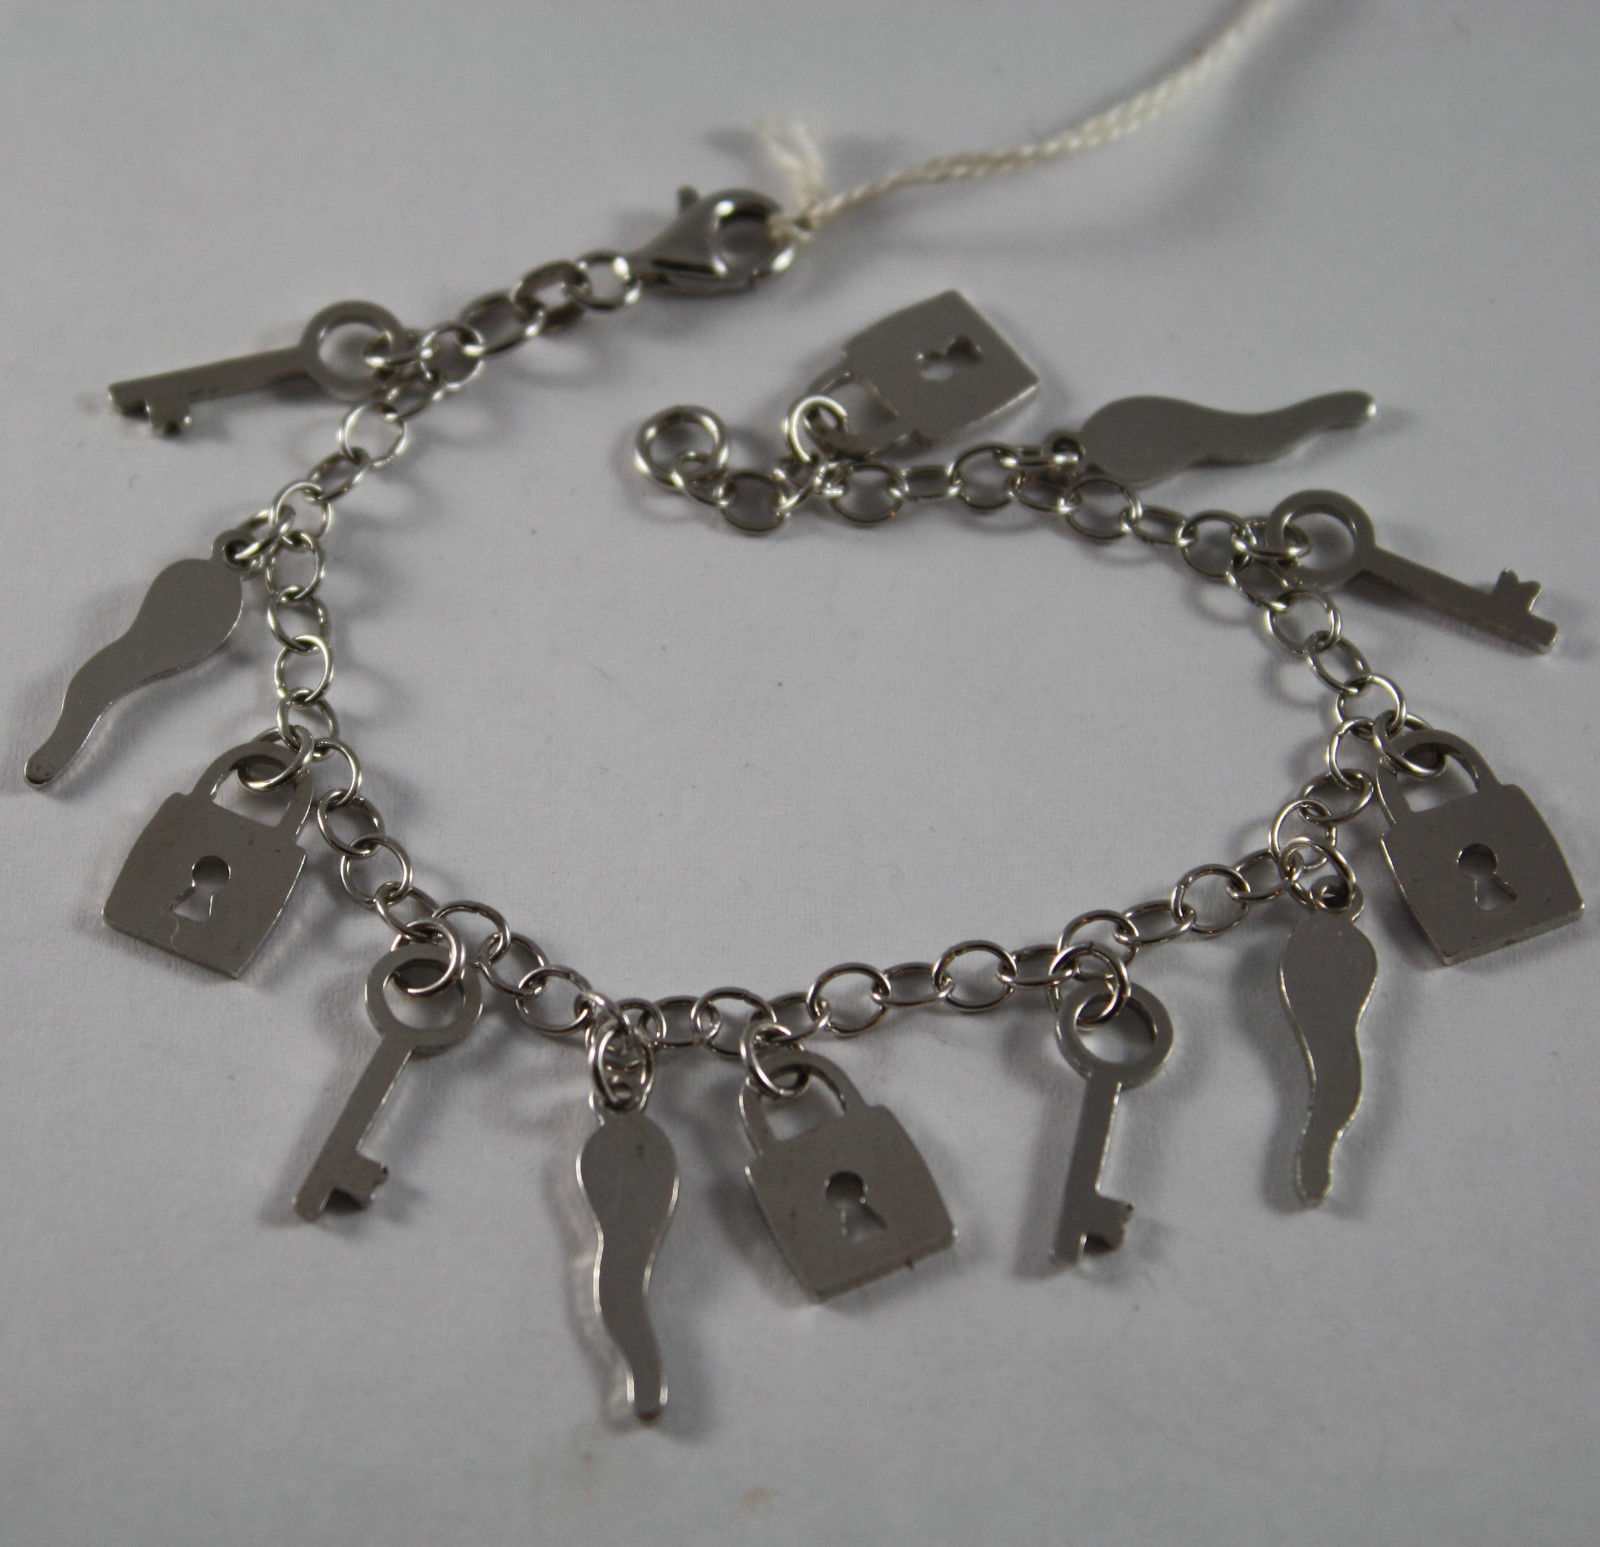 .925 RHODIUM SILVER BRACELET WITH HORNS, KEYS, LOCKS CHARMS